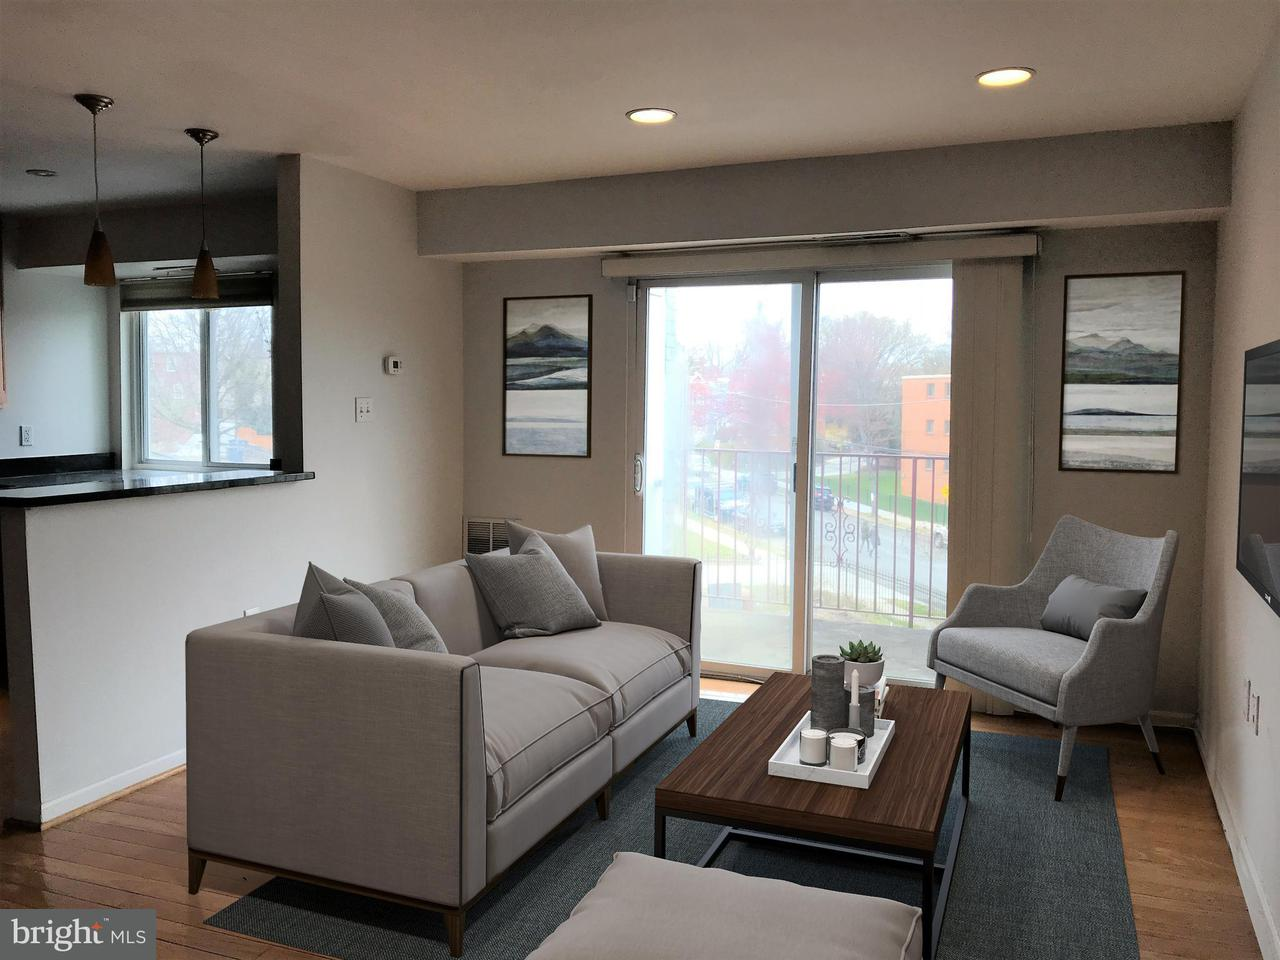 Additional photo for property listing at 2301 Pitts Pl SE #302  Washington, District Of Columbia 20020 United States